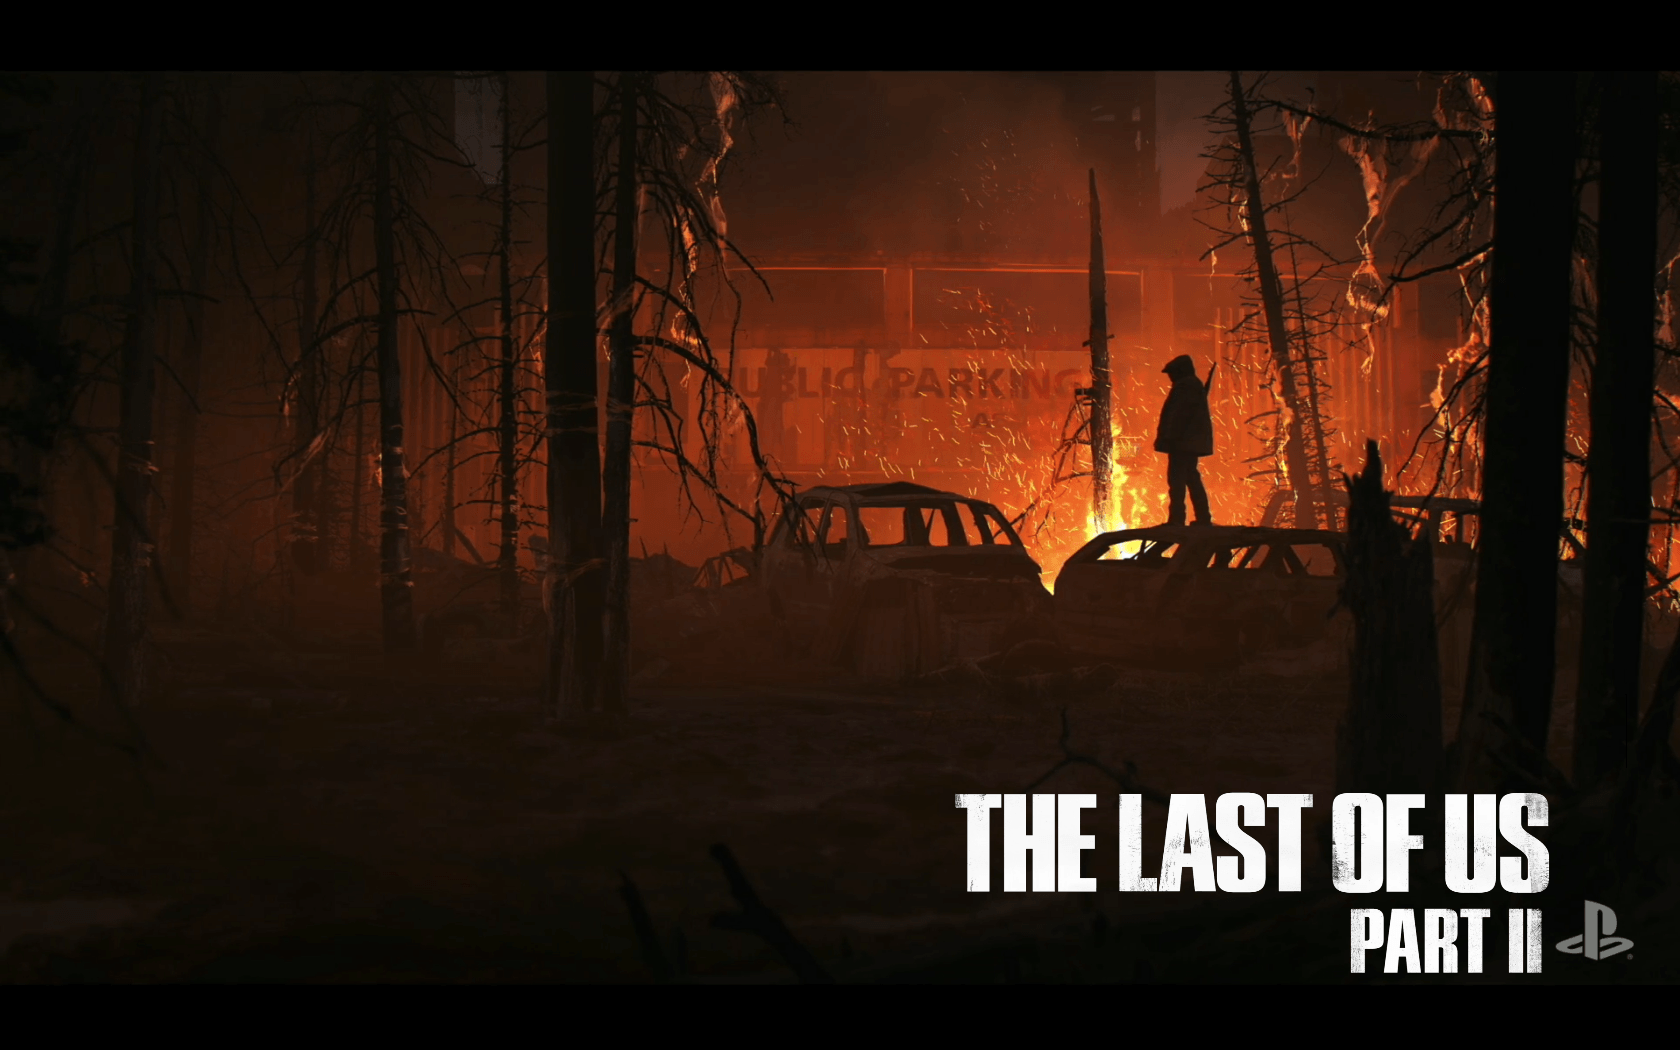 The Last Of Us 2 Wallpapers Wallpaper Cave